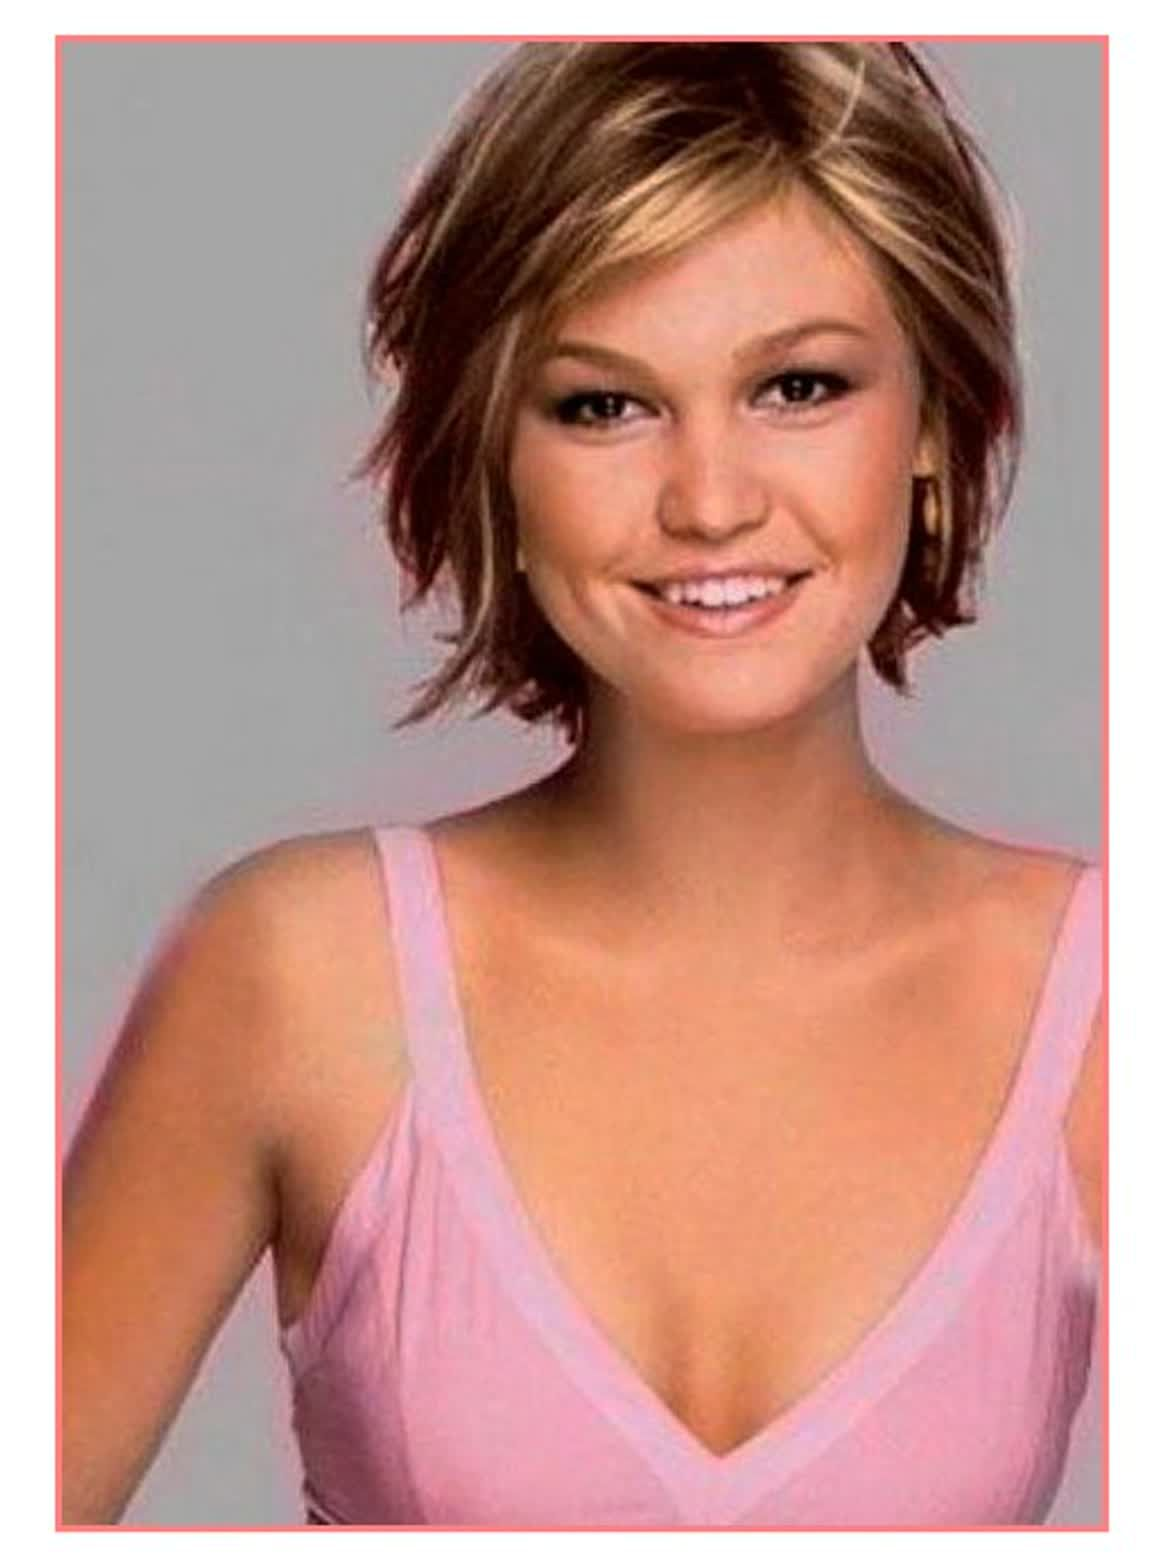 The Haircuts Short Hairstyles For Women In Their 30s Cute Hairstyles For Short Hair Hair Styles Short Hair Styles